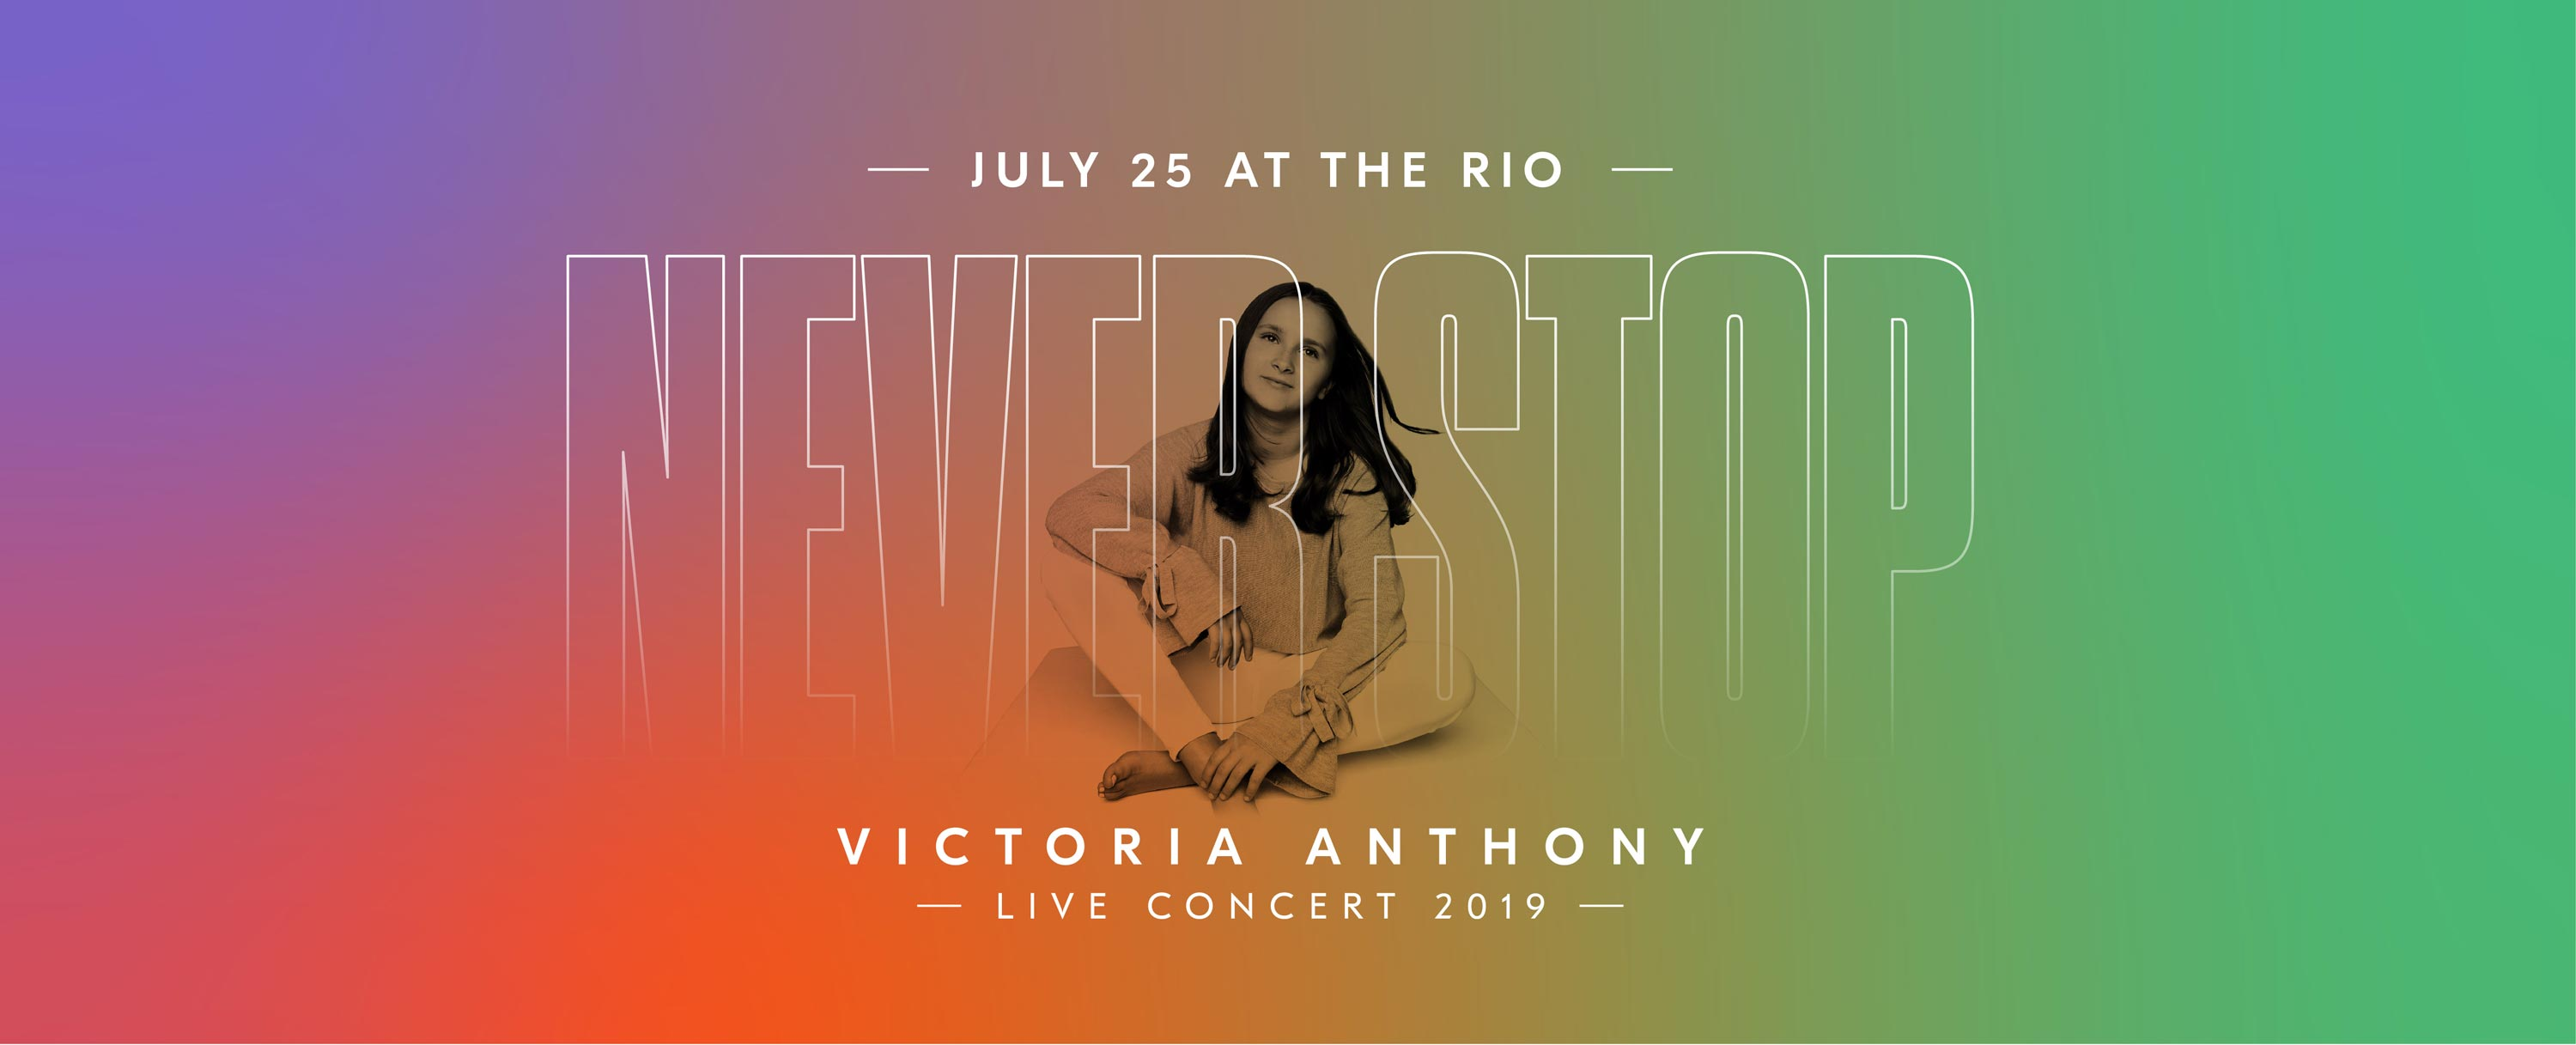 Never Stop : Victoria Anthony Live Concert July 25th, 2019